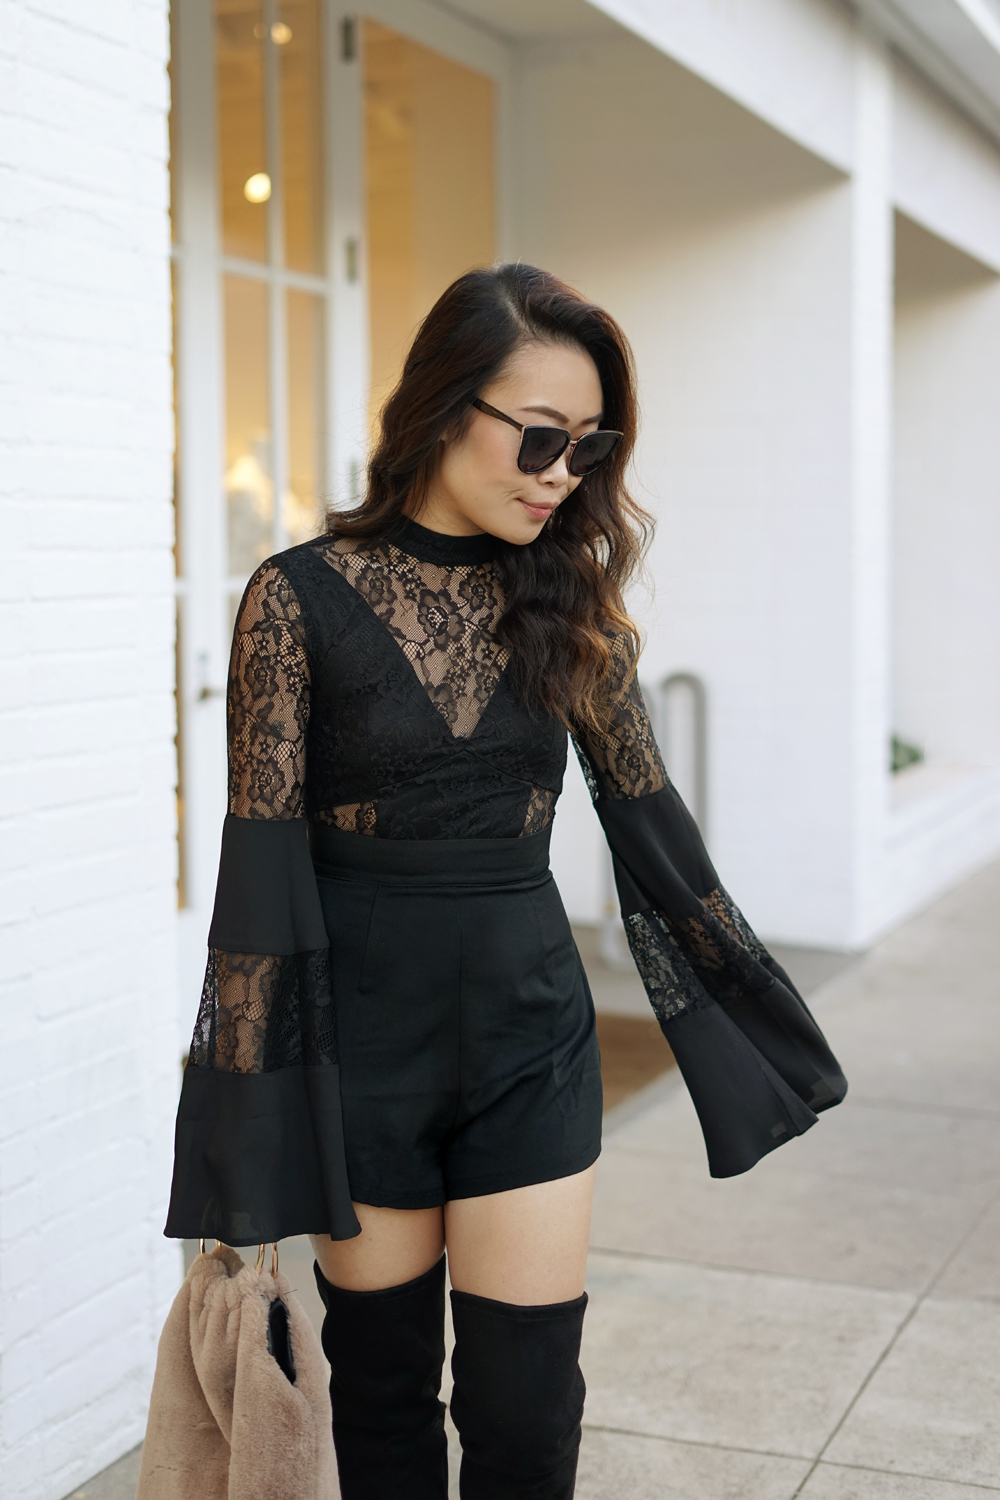 07black-lace-romper-melrose-fashion-ootd